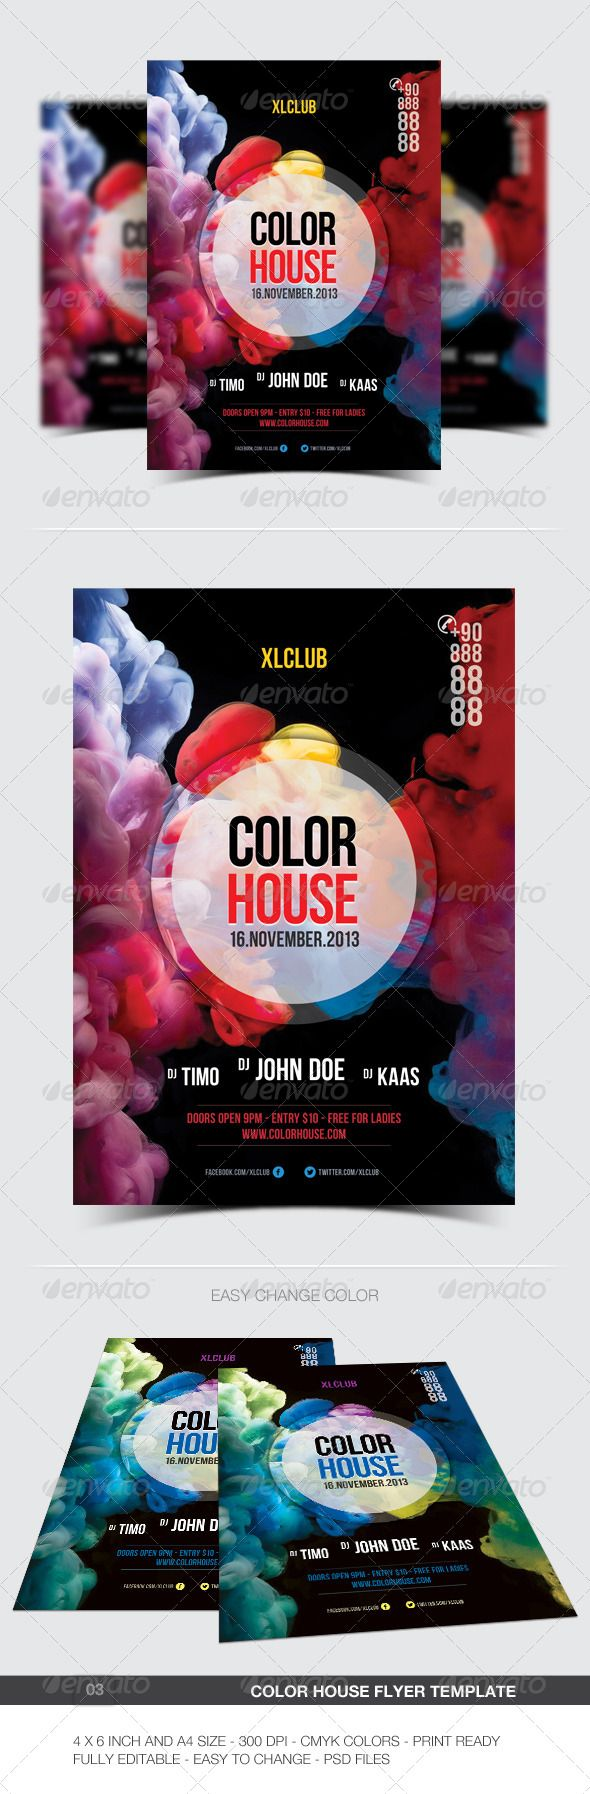 Color House Flyer Poster